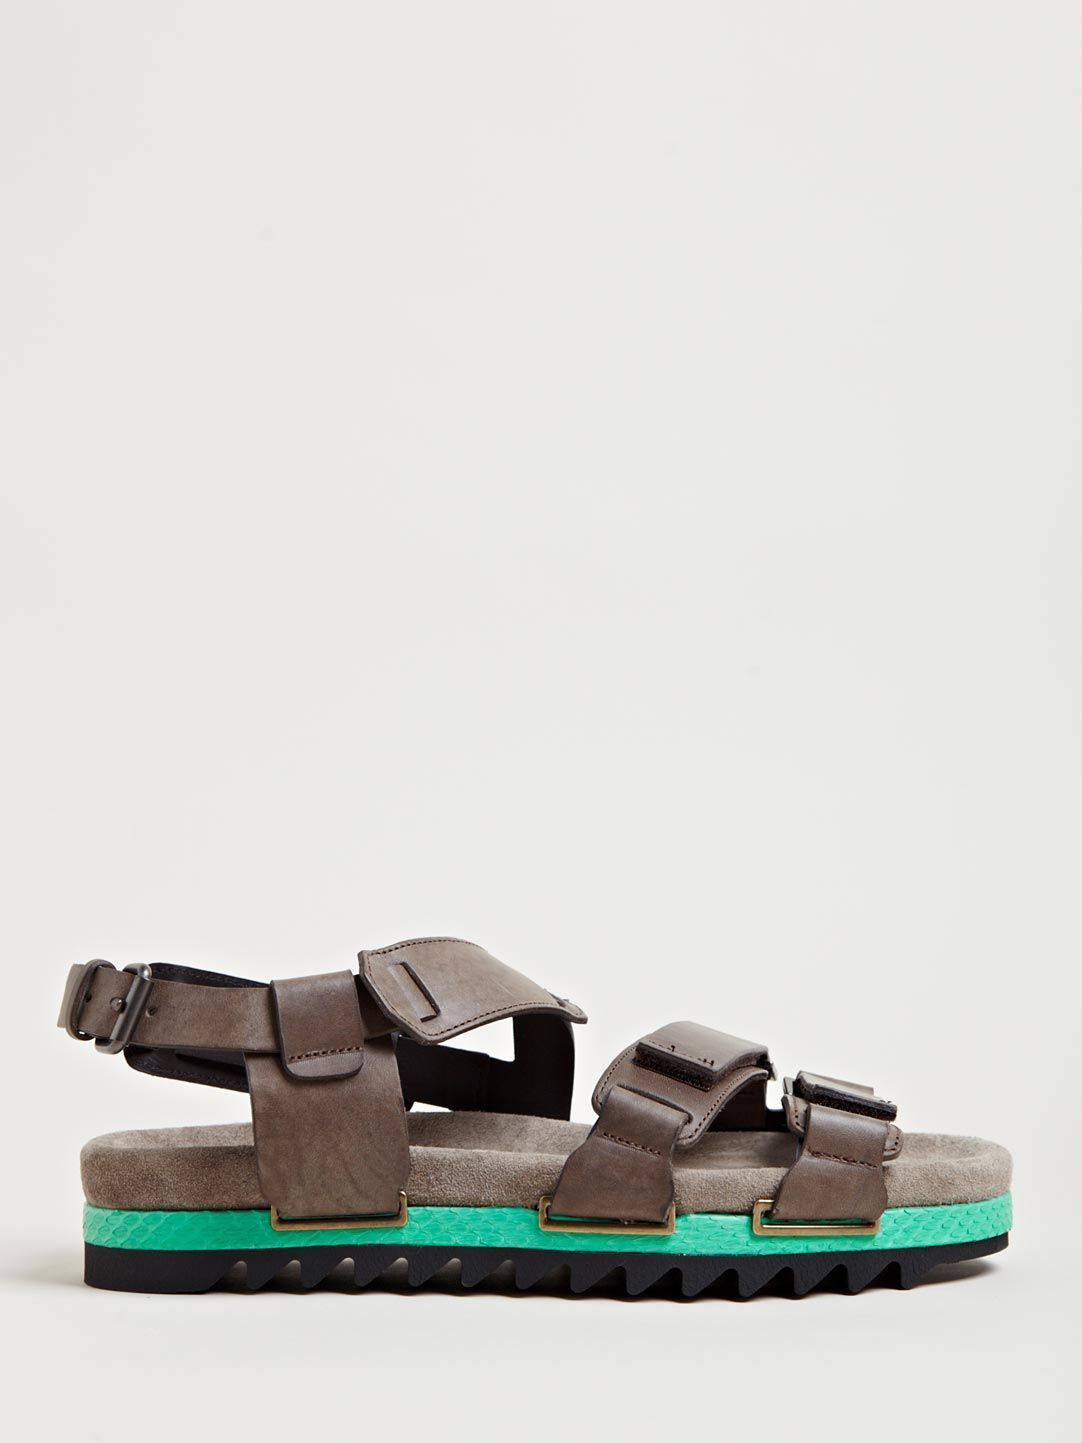 Look Really Myself Never Sandals But Legit Liked These Actually rdoQEBCxeW